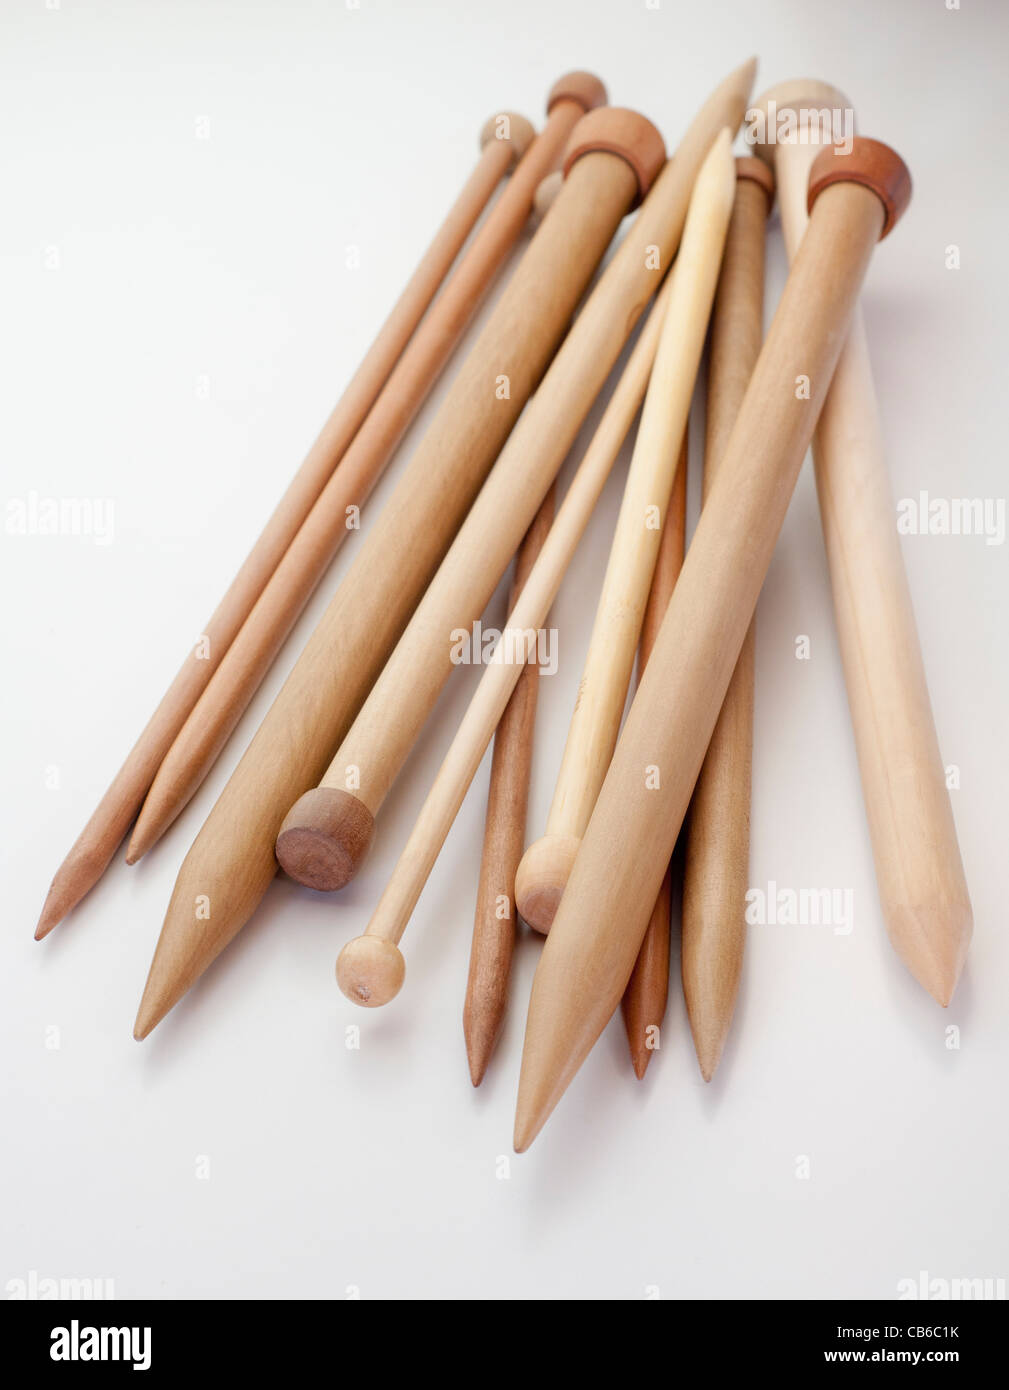 knitting wool sticks of different sizes - Stock Image